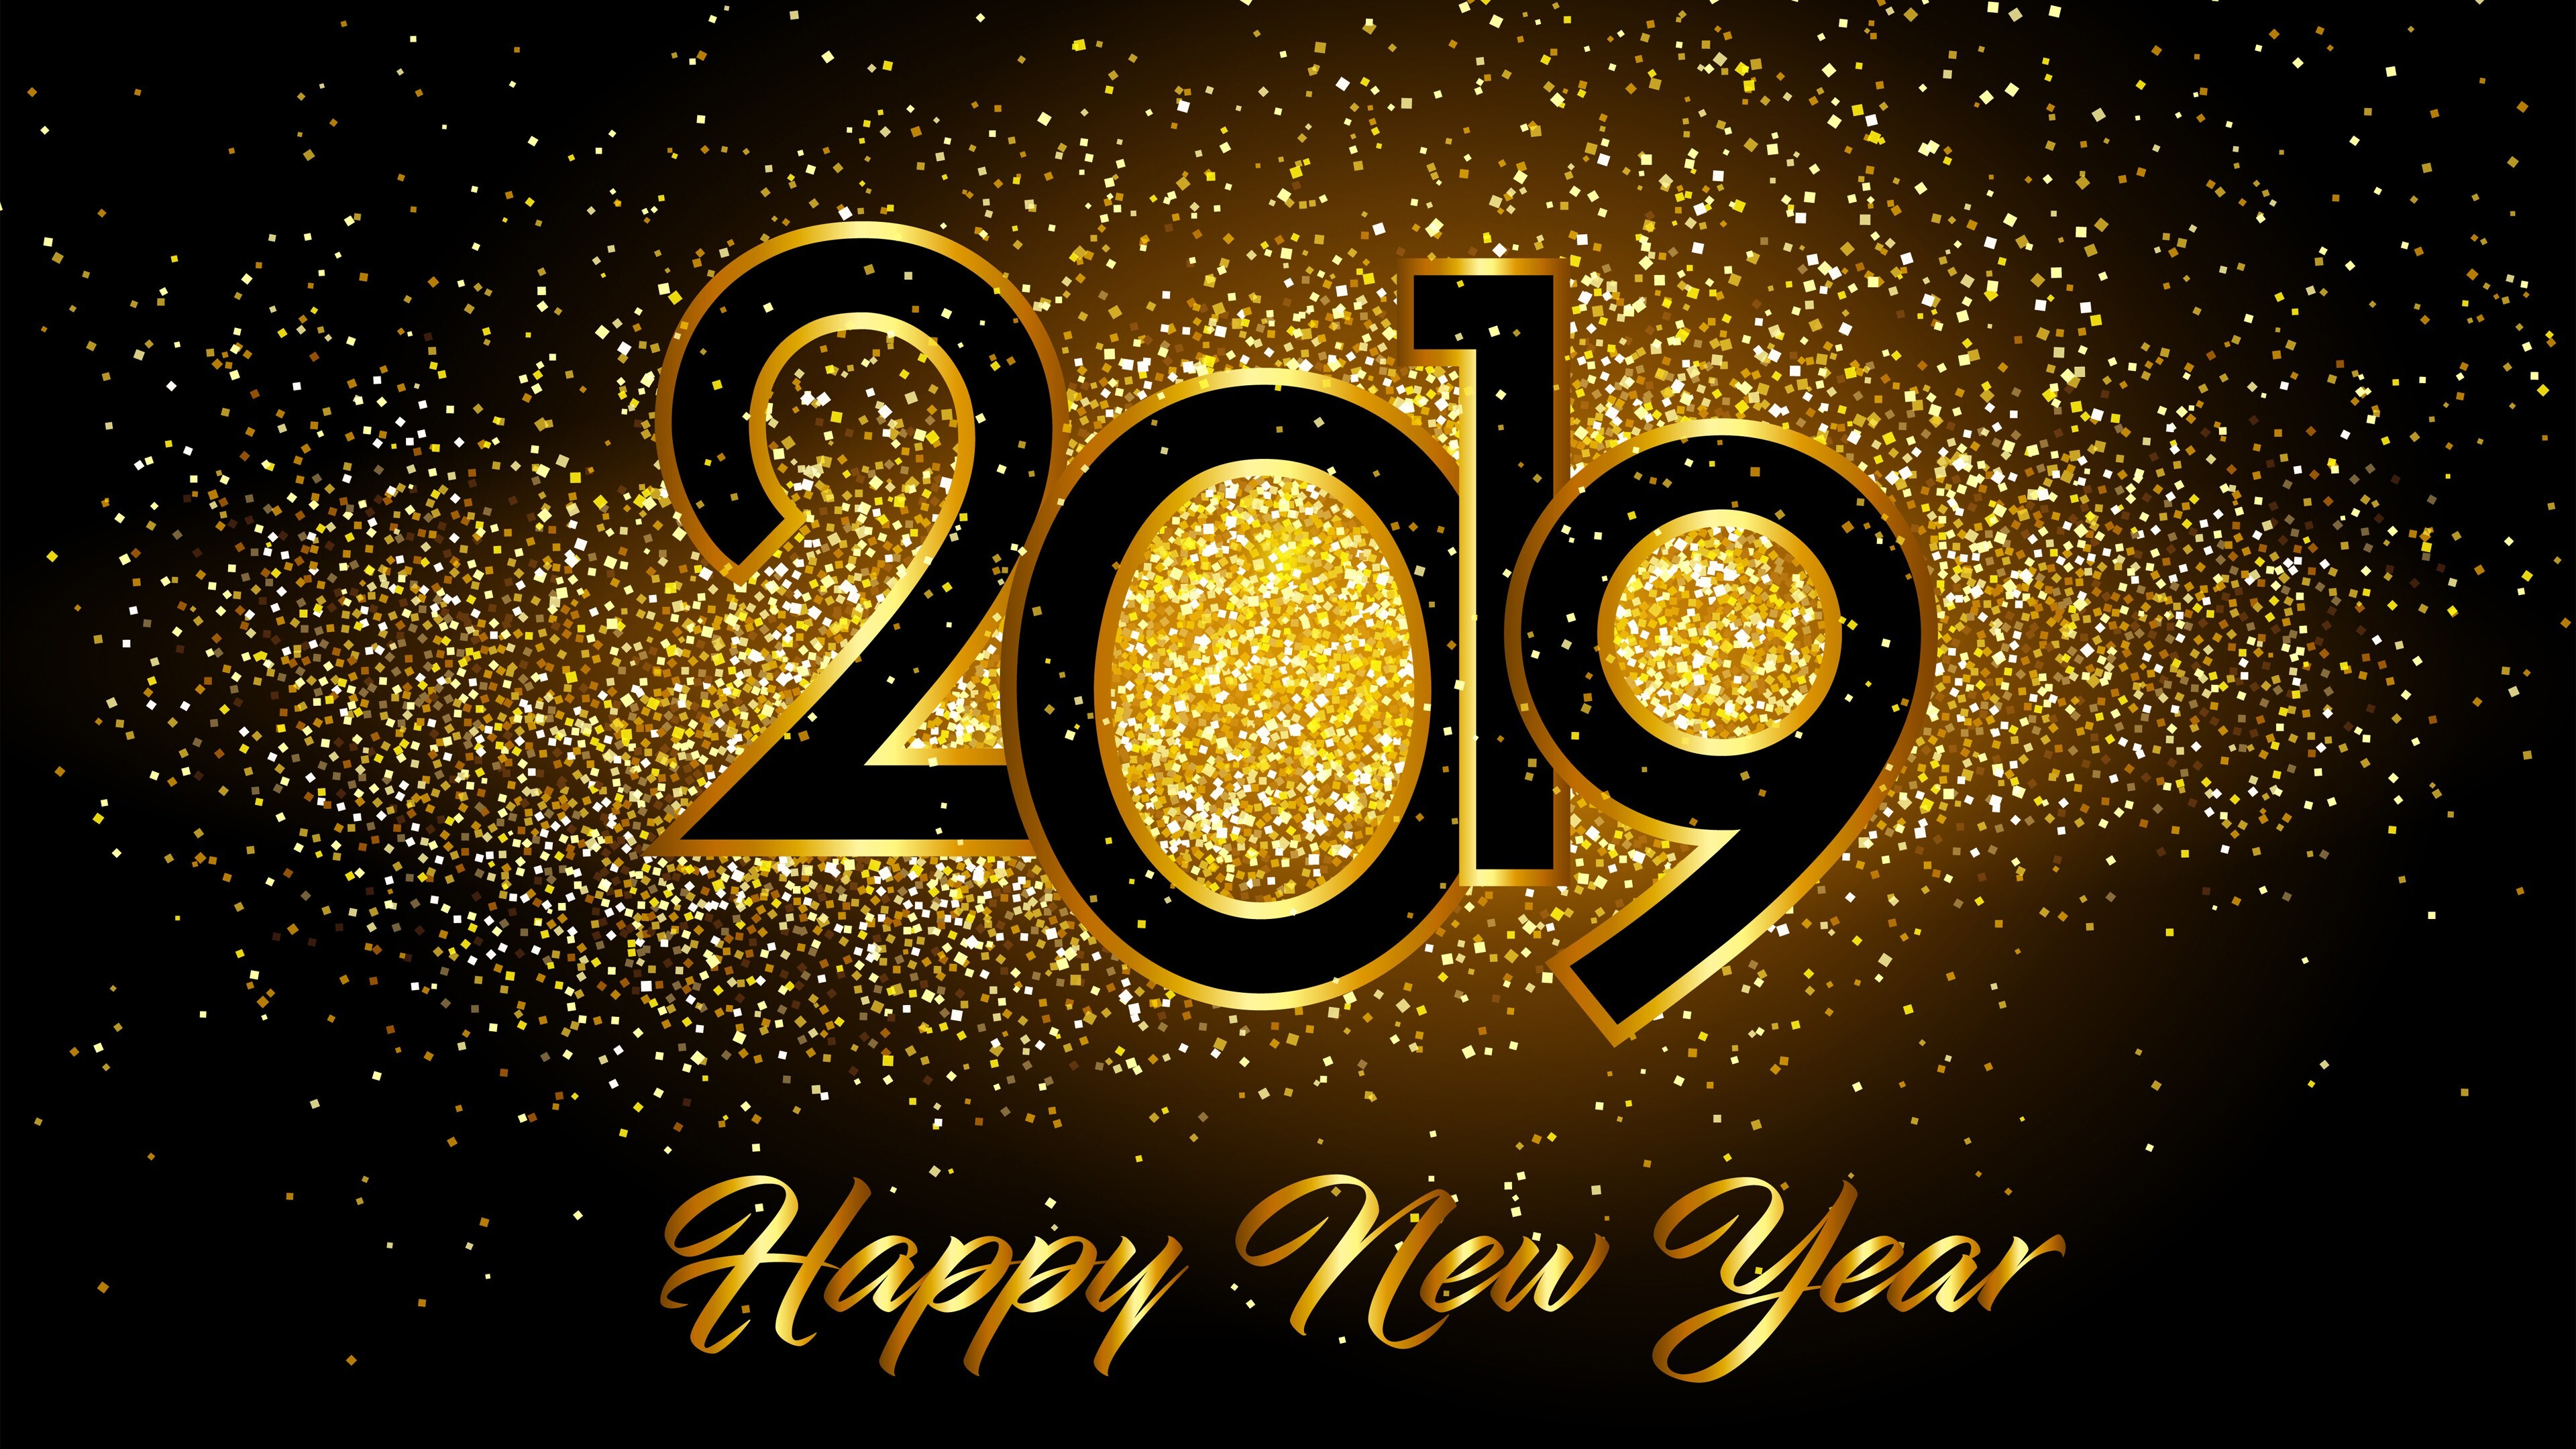 Happy New Year 2019 4K Images | HD Wallpapers